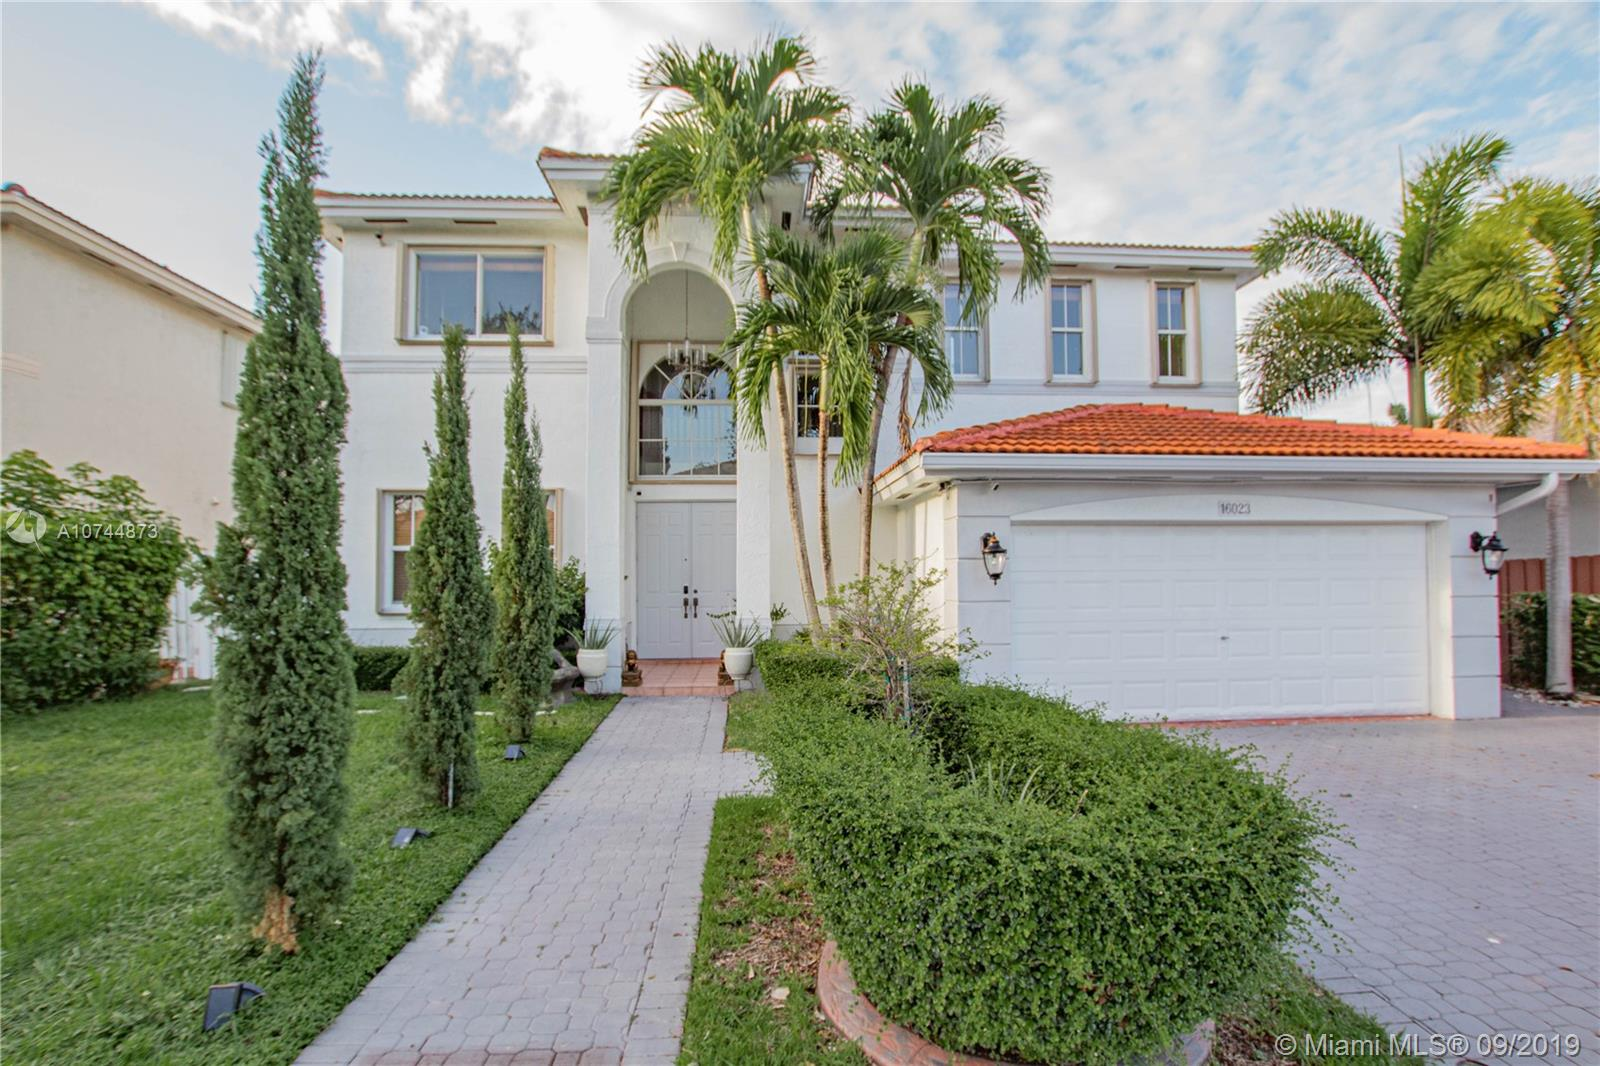 16023 SW 63rd Ter, one of homes for sale in Kendall West